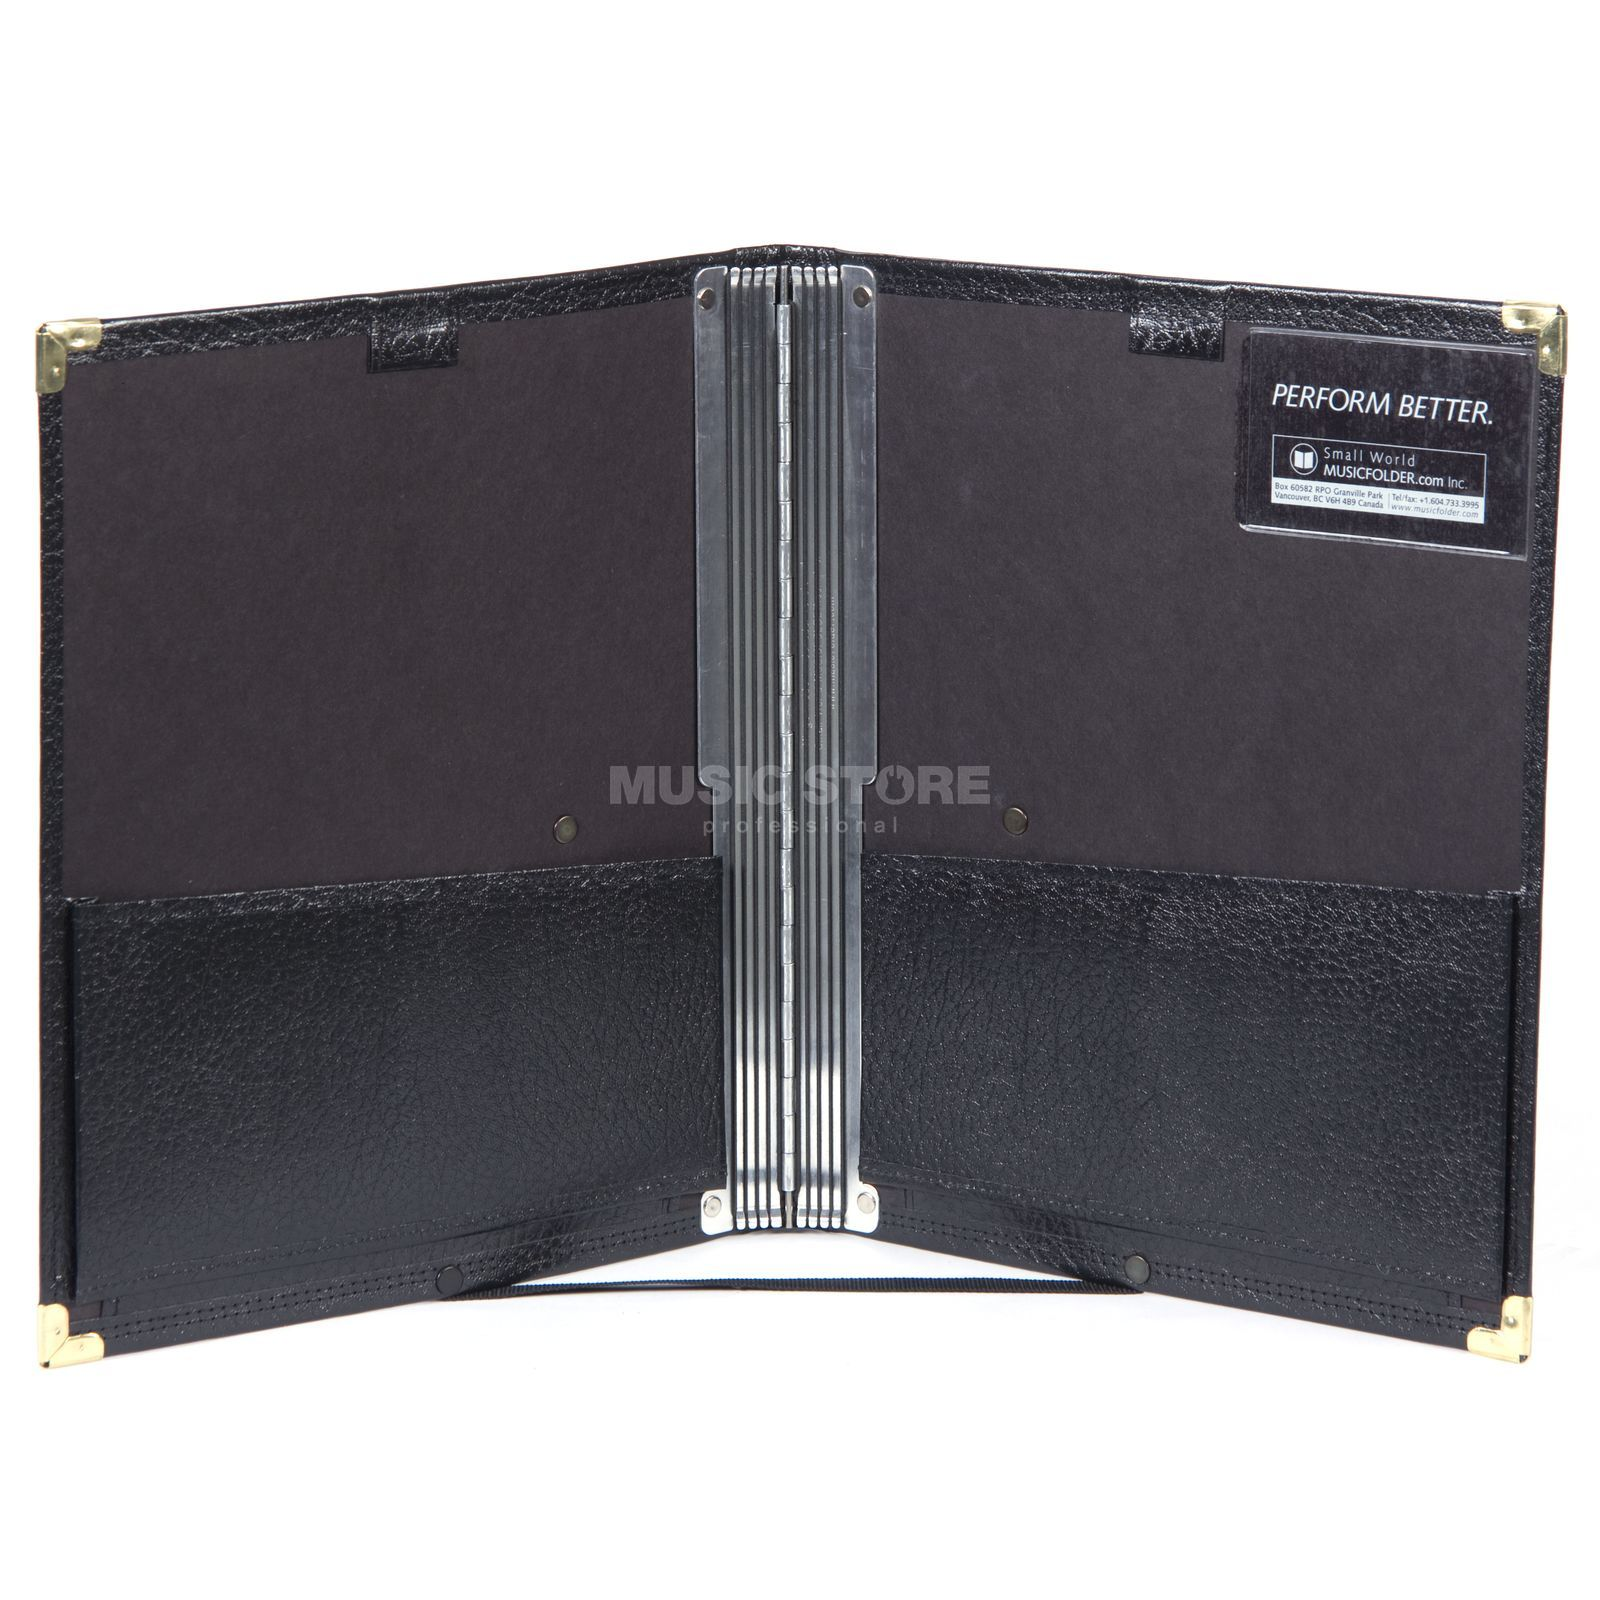 Musicfolder.com Black Folder Die ultimative Chormappe Produktbillede